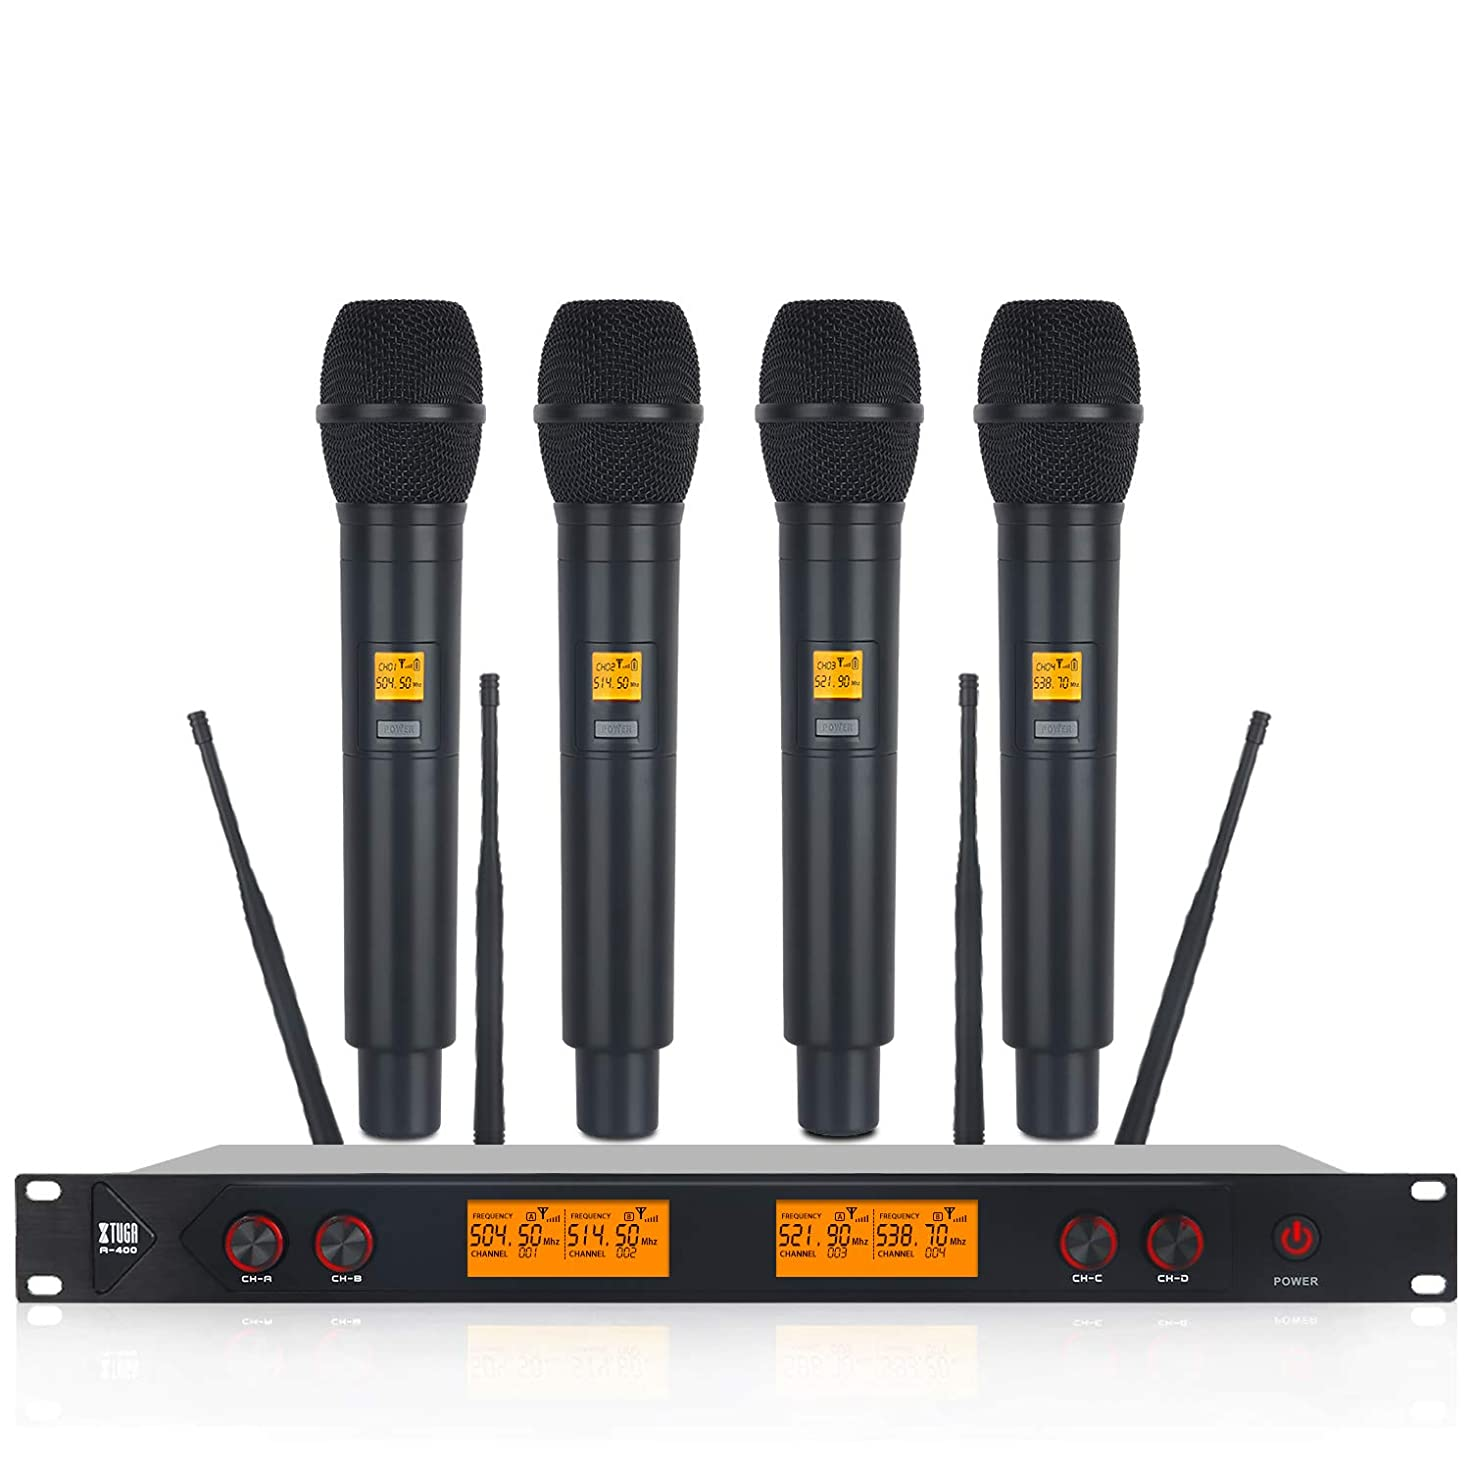 XTUGA A400 Metal Material 4-Channel UHF Wireless Microphone System with 4 Hand-held for Stage Church Use for Family Party, Church, Small Karaoke Night (A) …